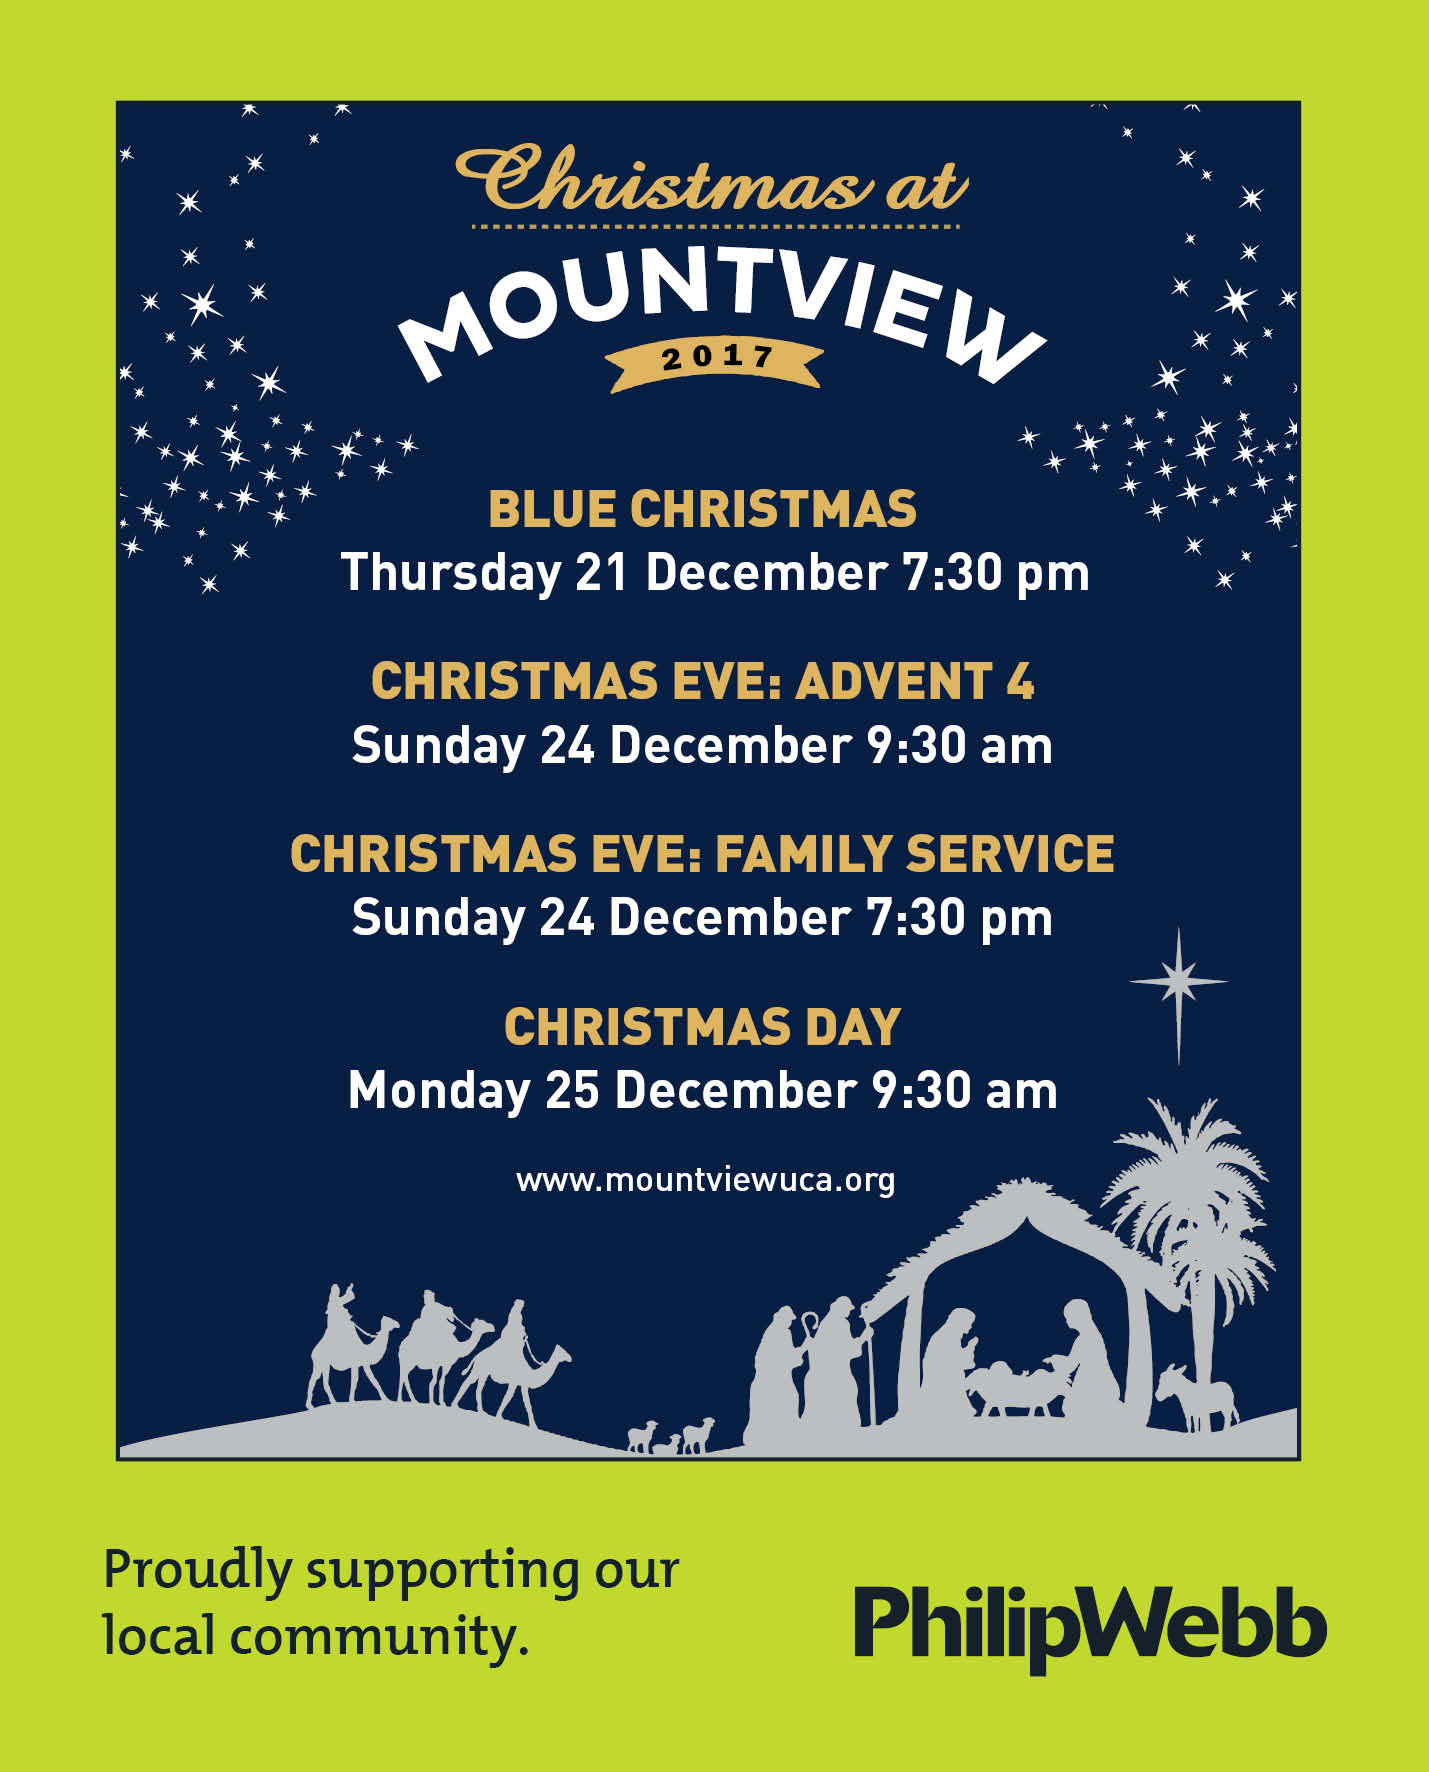 Christmas at Mountview